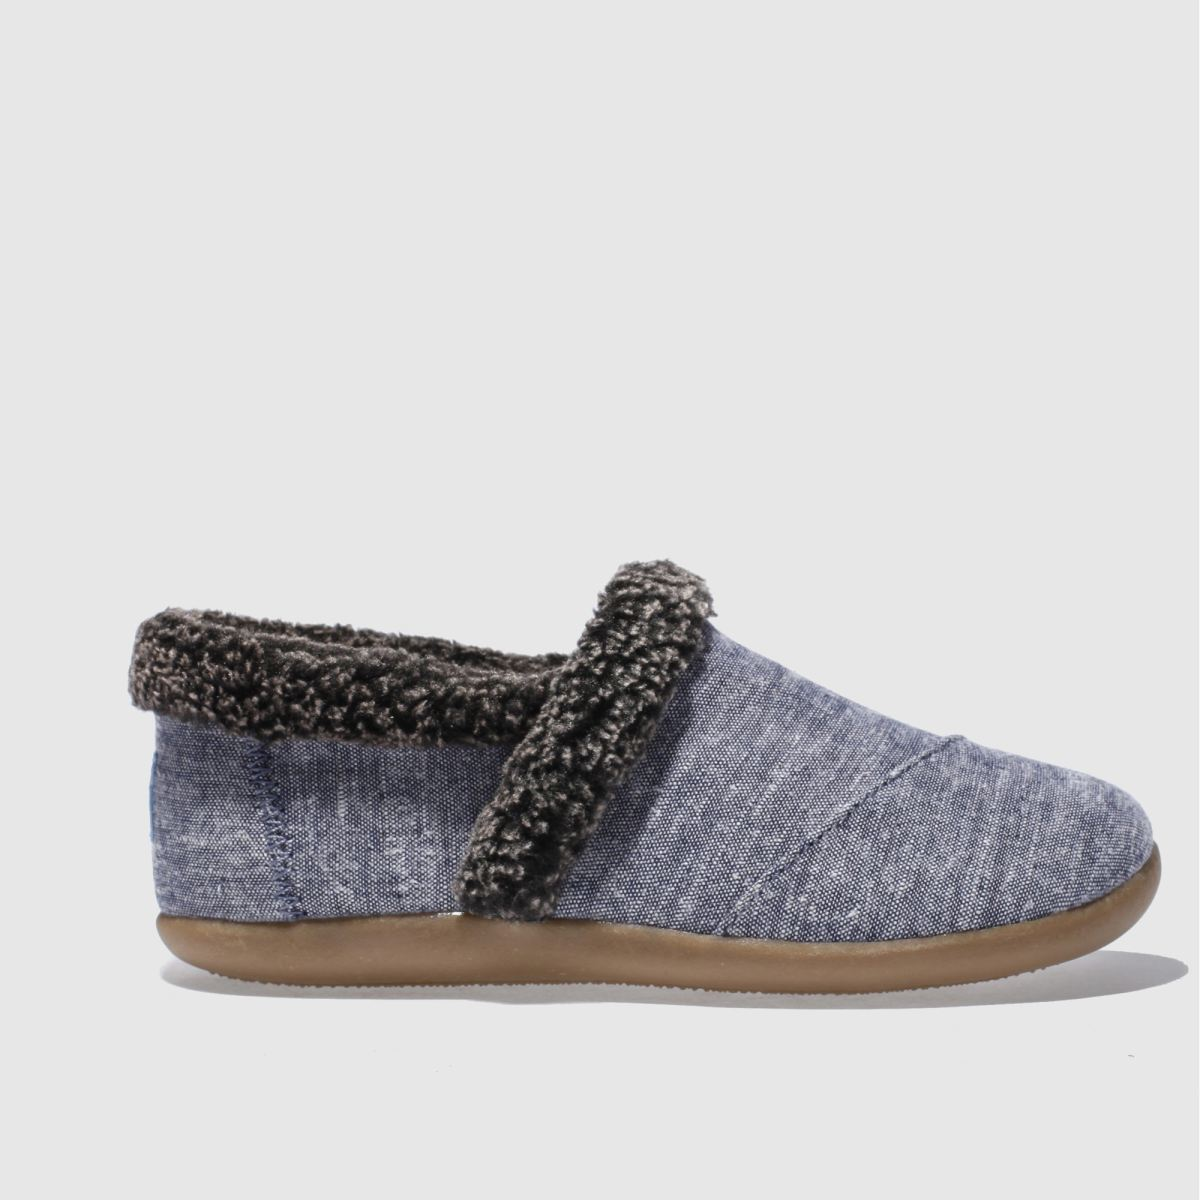 toms navy house slipper Boys Junior Shoes